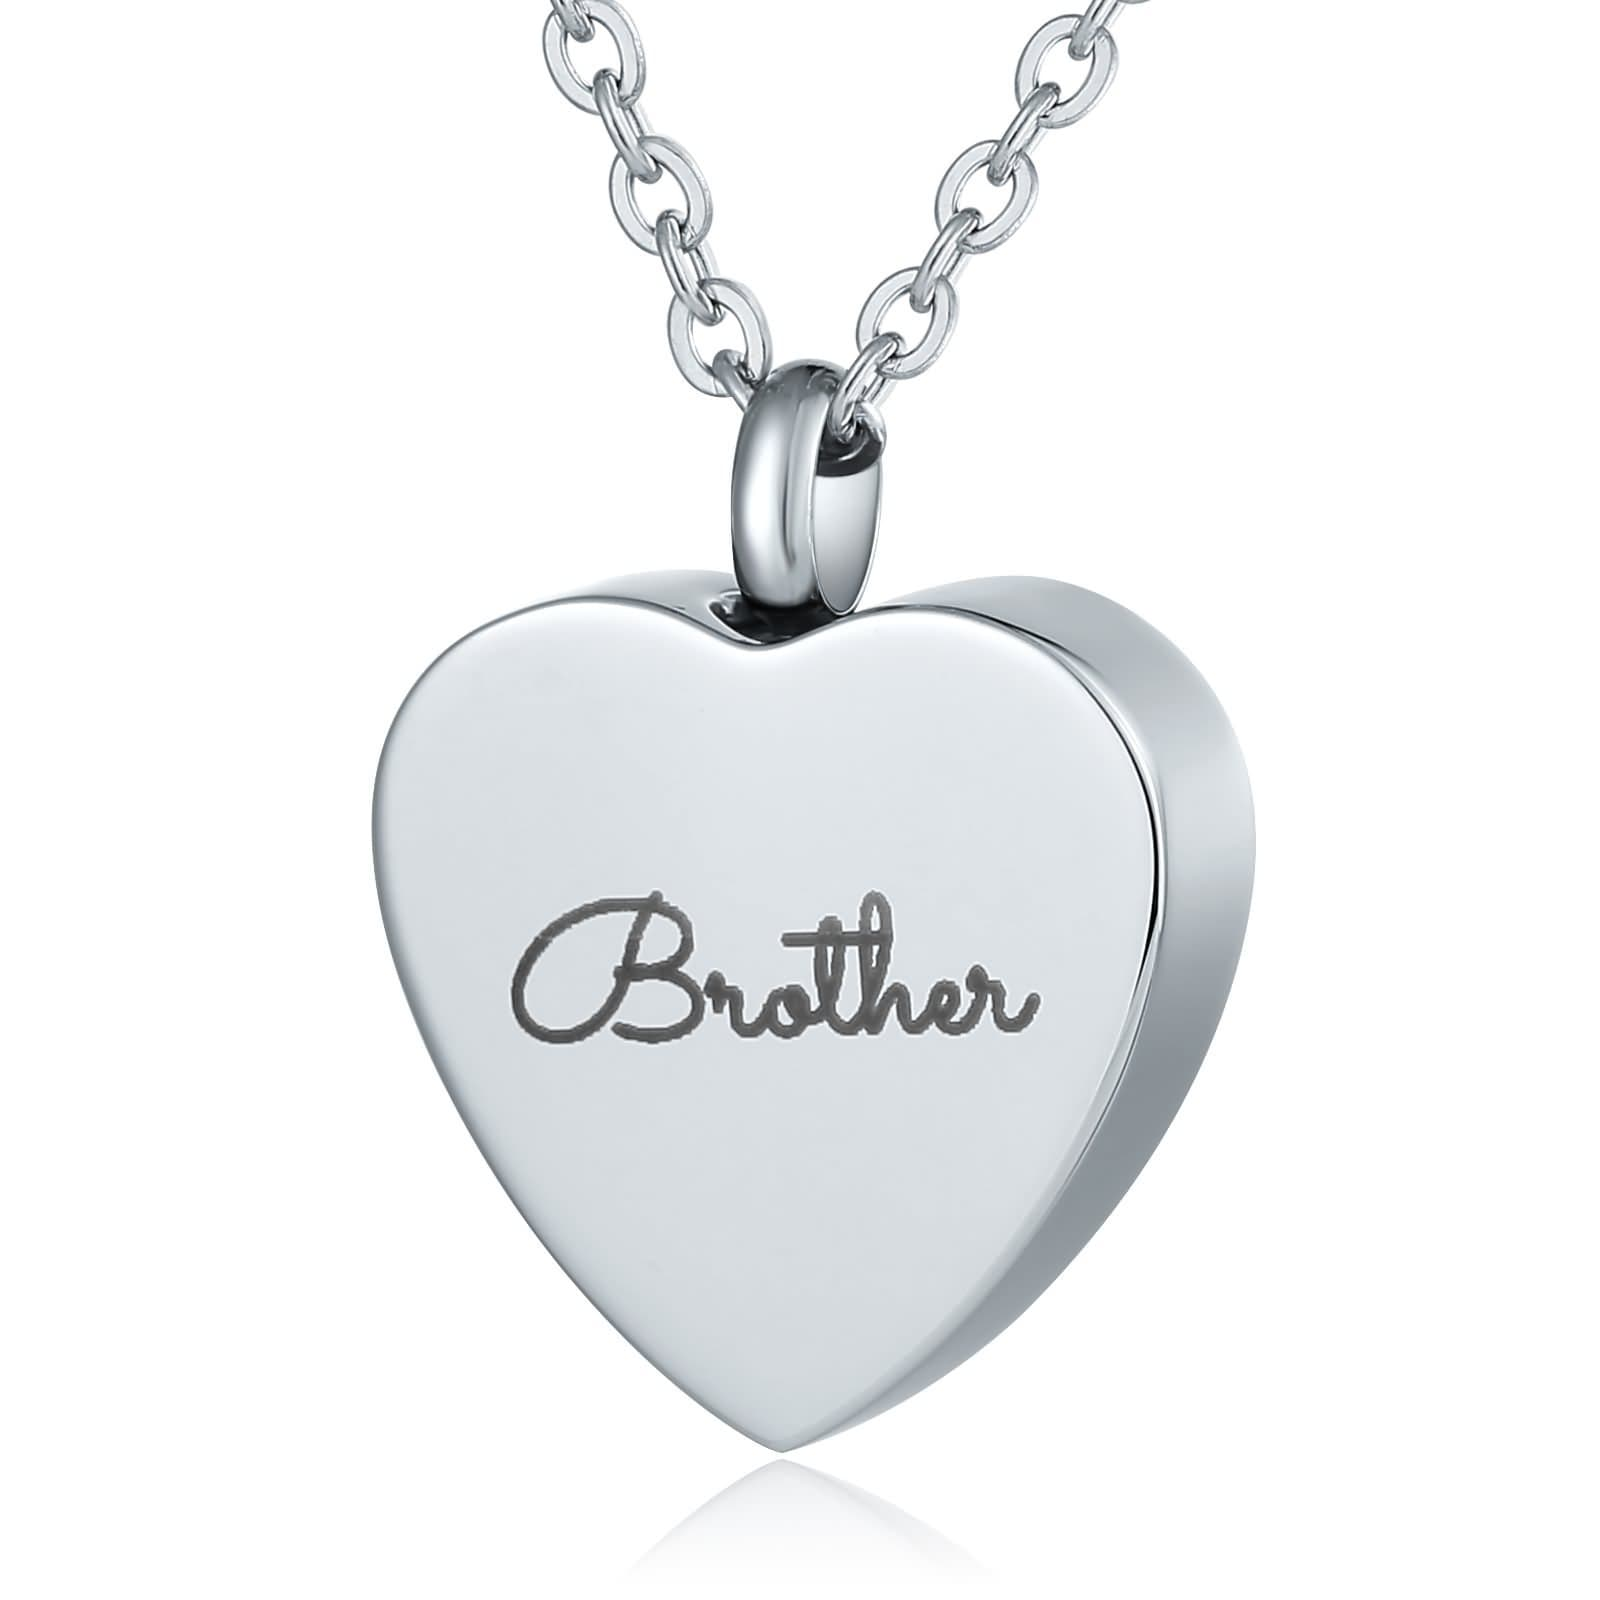 Ashes Necklace Keepsake Pendant Stainless Steel Jewlery Heart Engravable 2 x 2.5cm